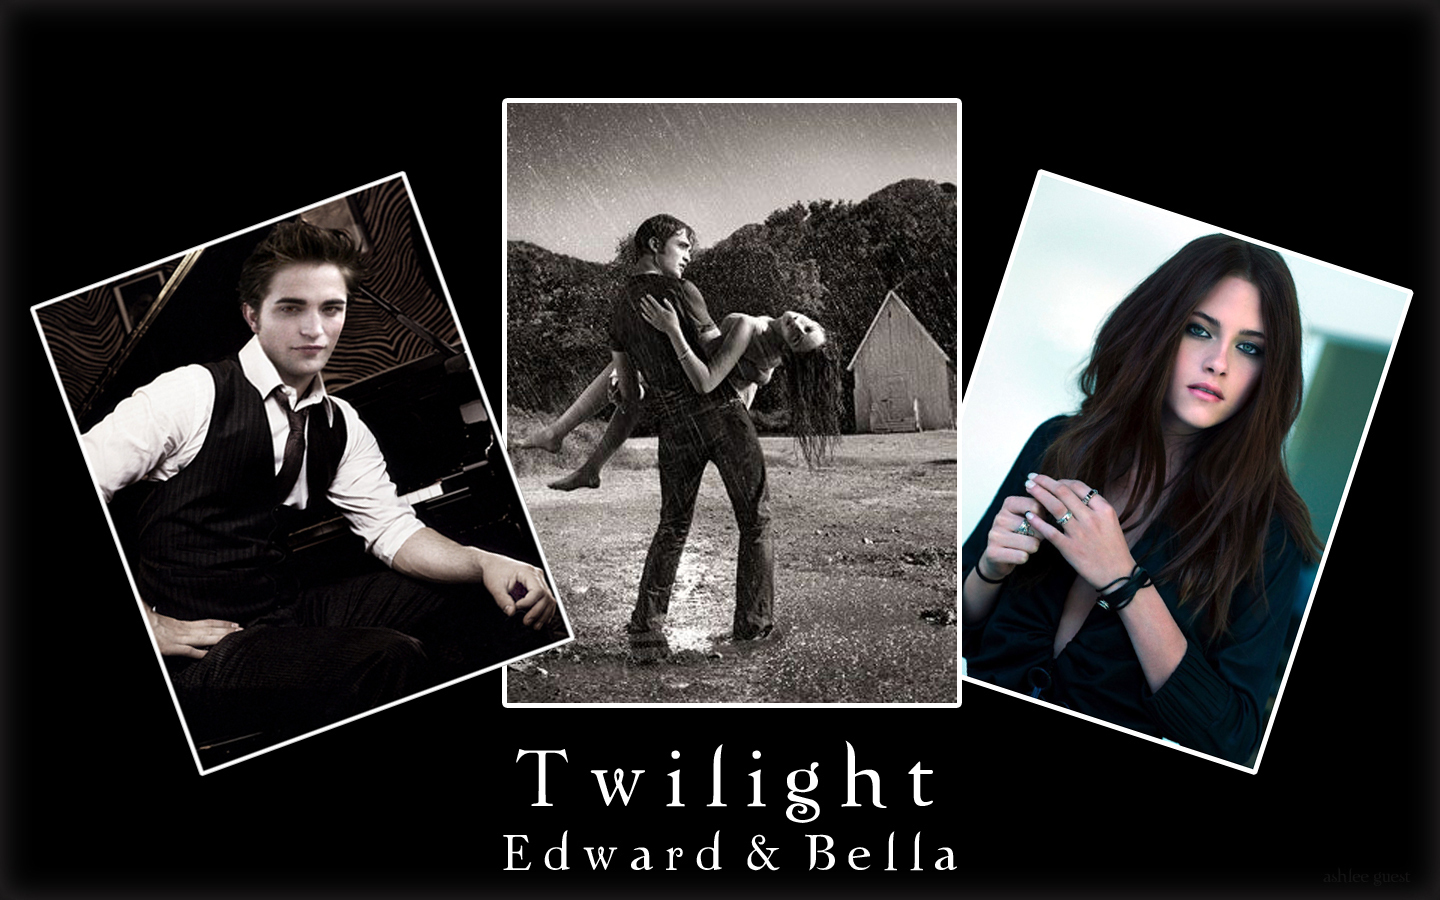 Twilight characters - twilight-series wallpaper